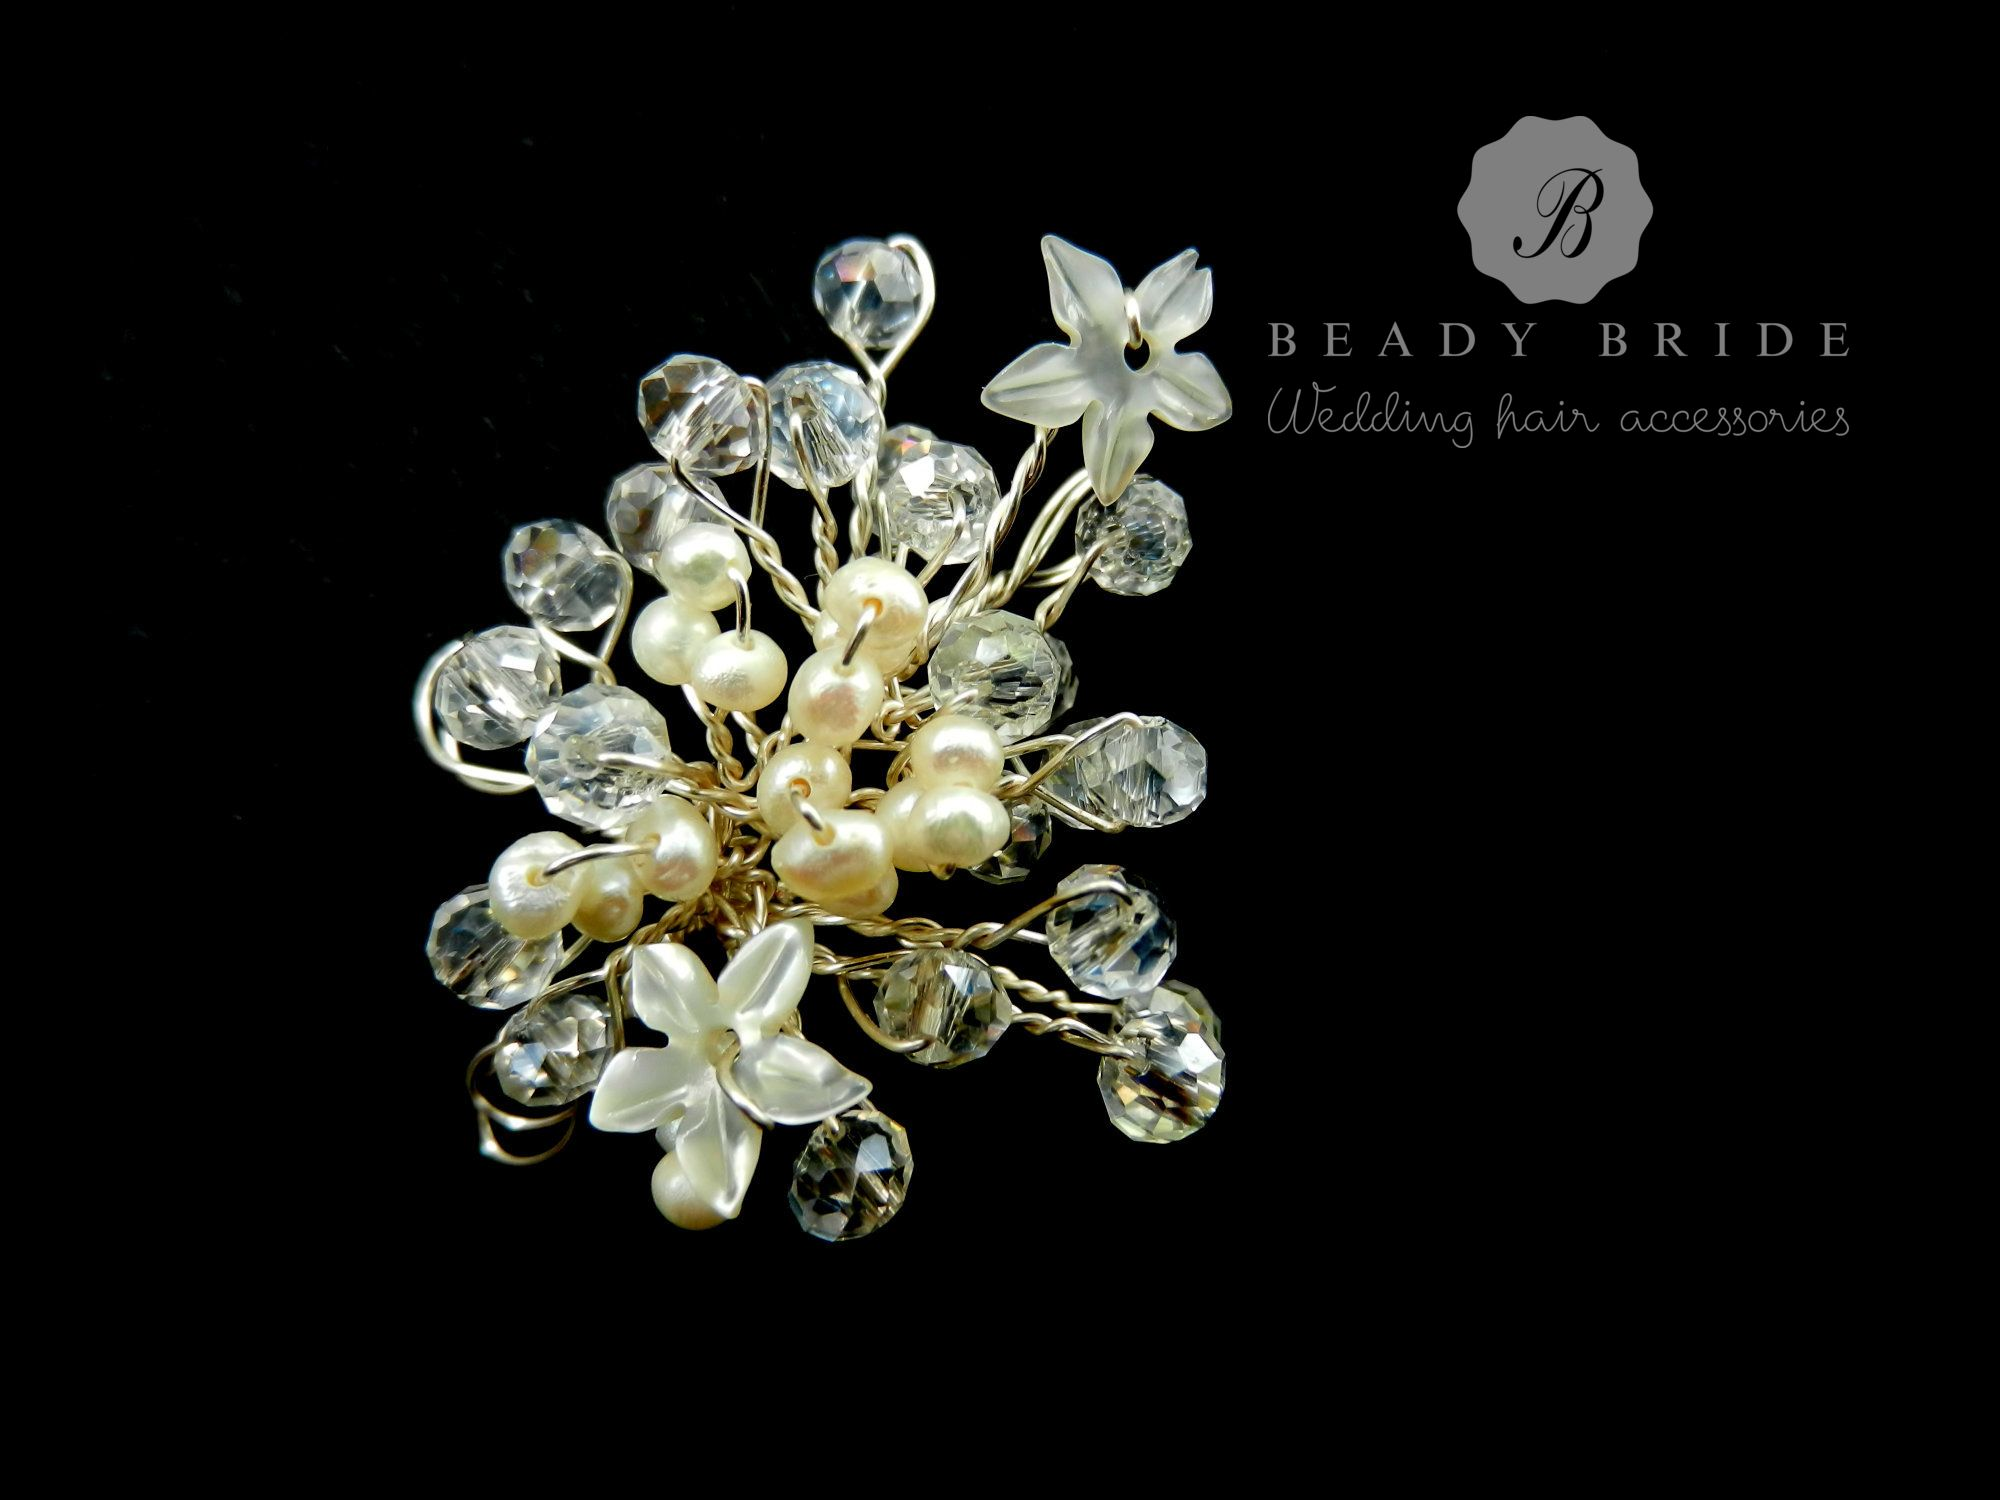 Crystal bridal hair pin accessories by Beady Bride-Gloucestershire-UK